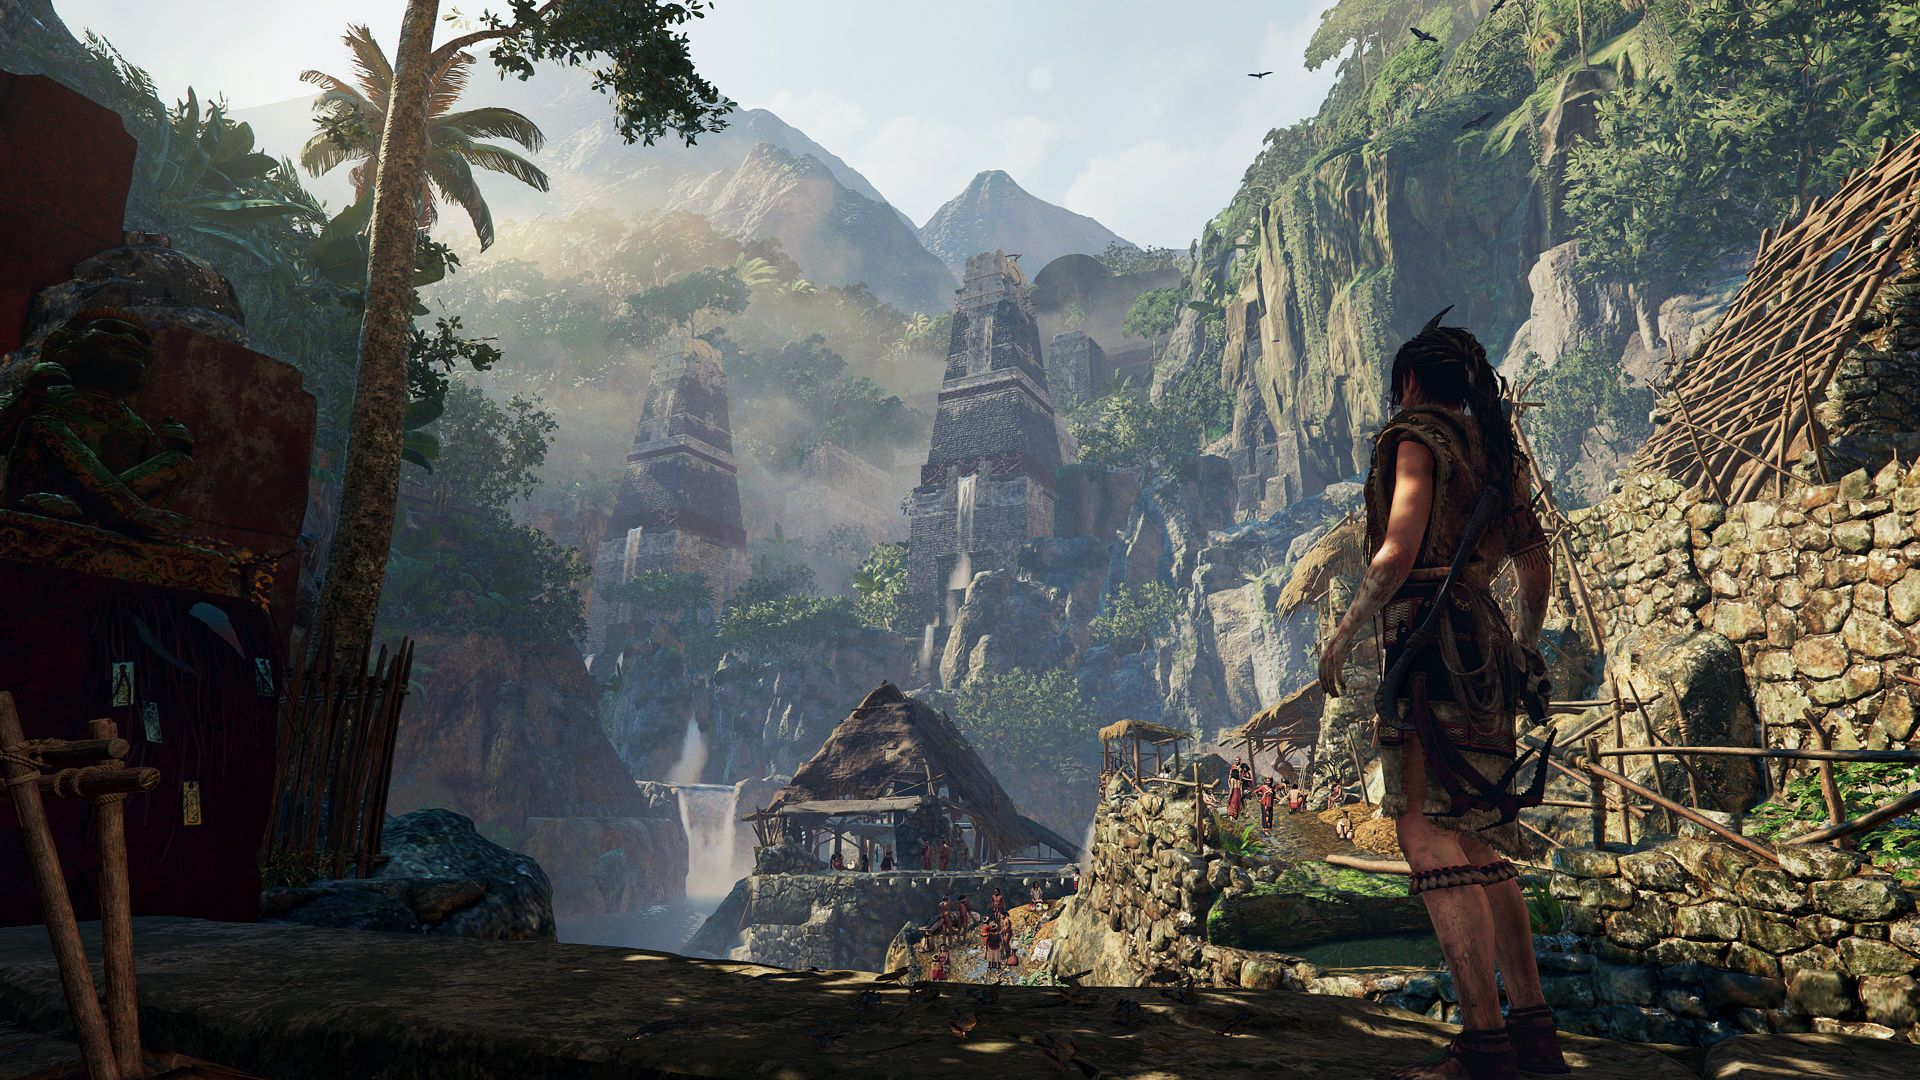 Videopreview: Shadow of the Tomb Raider